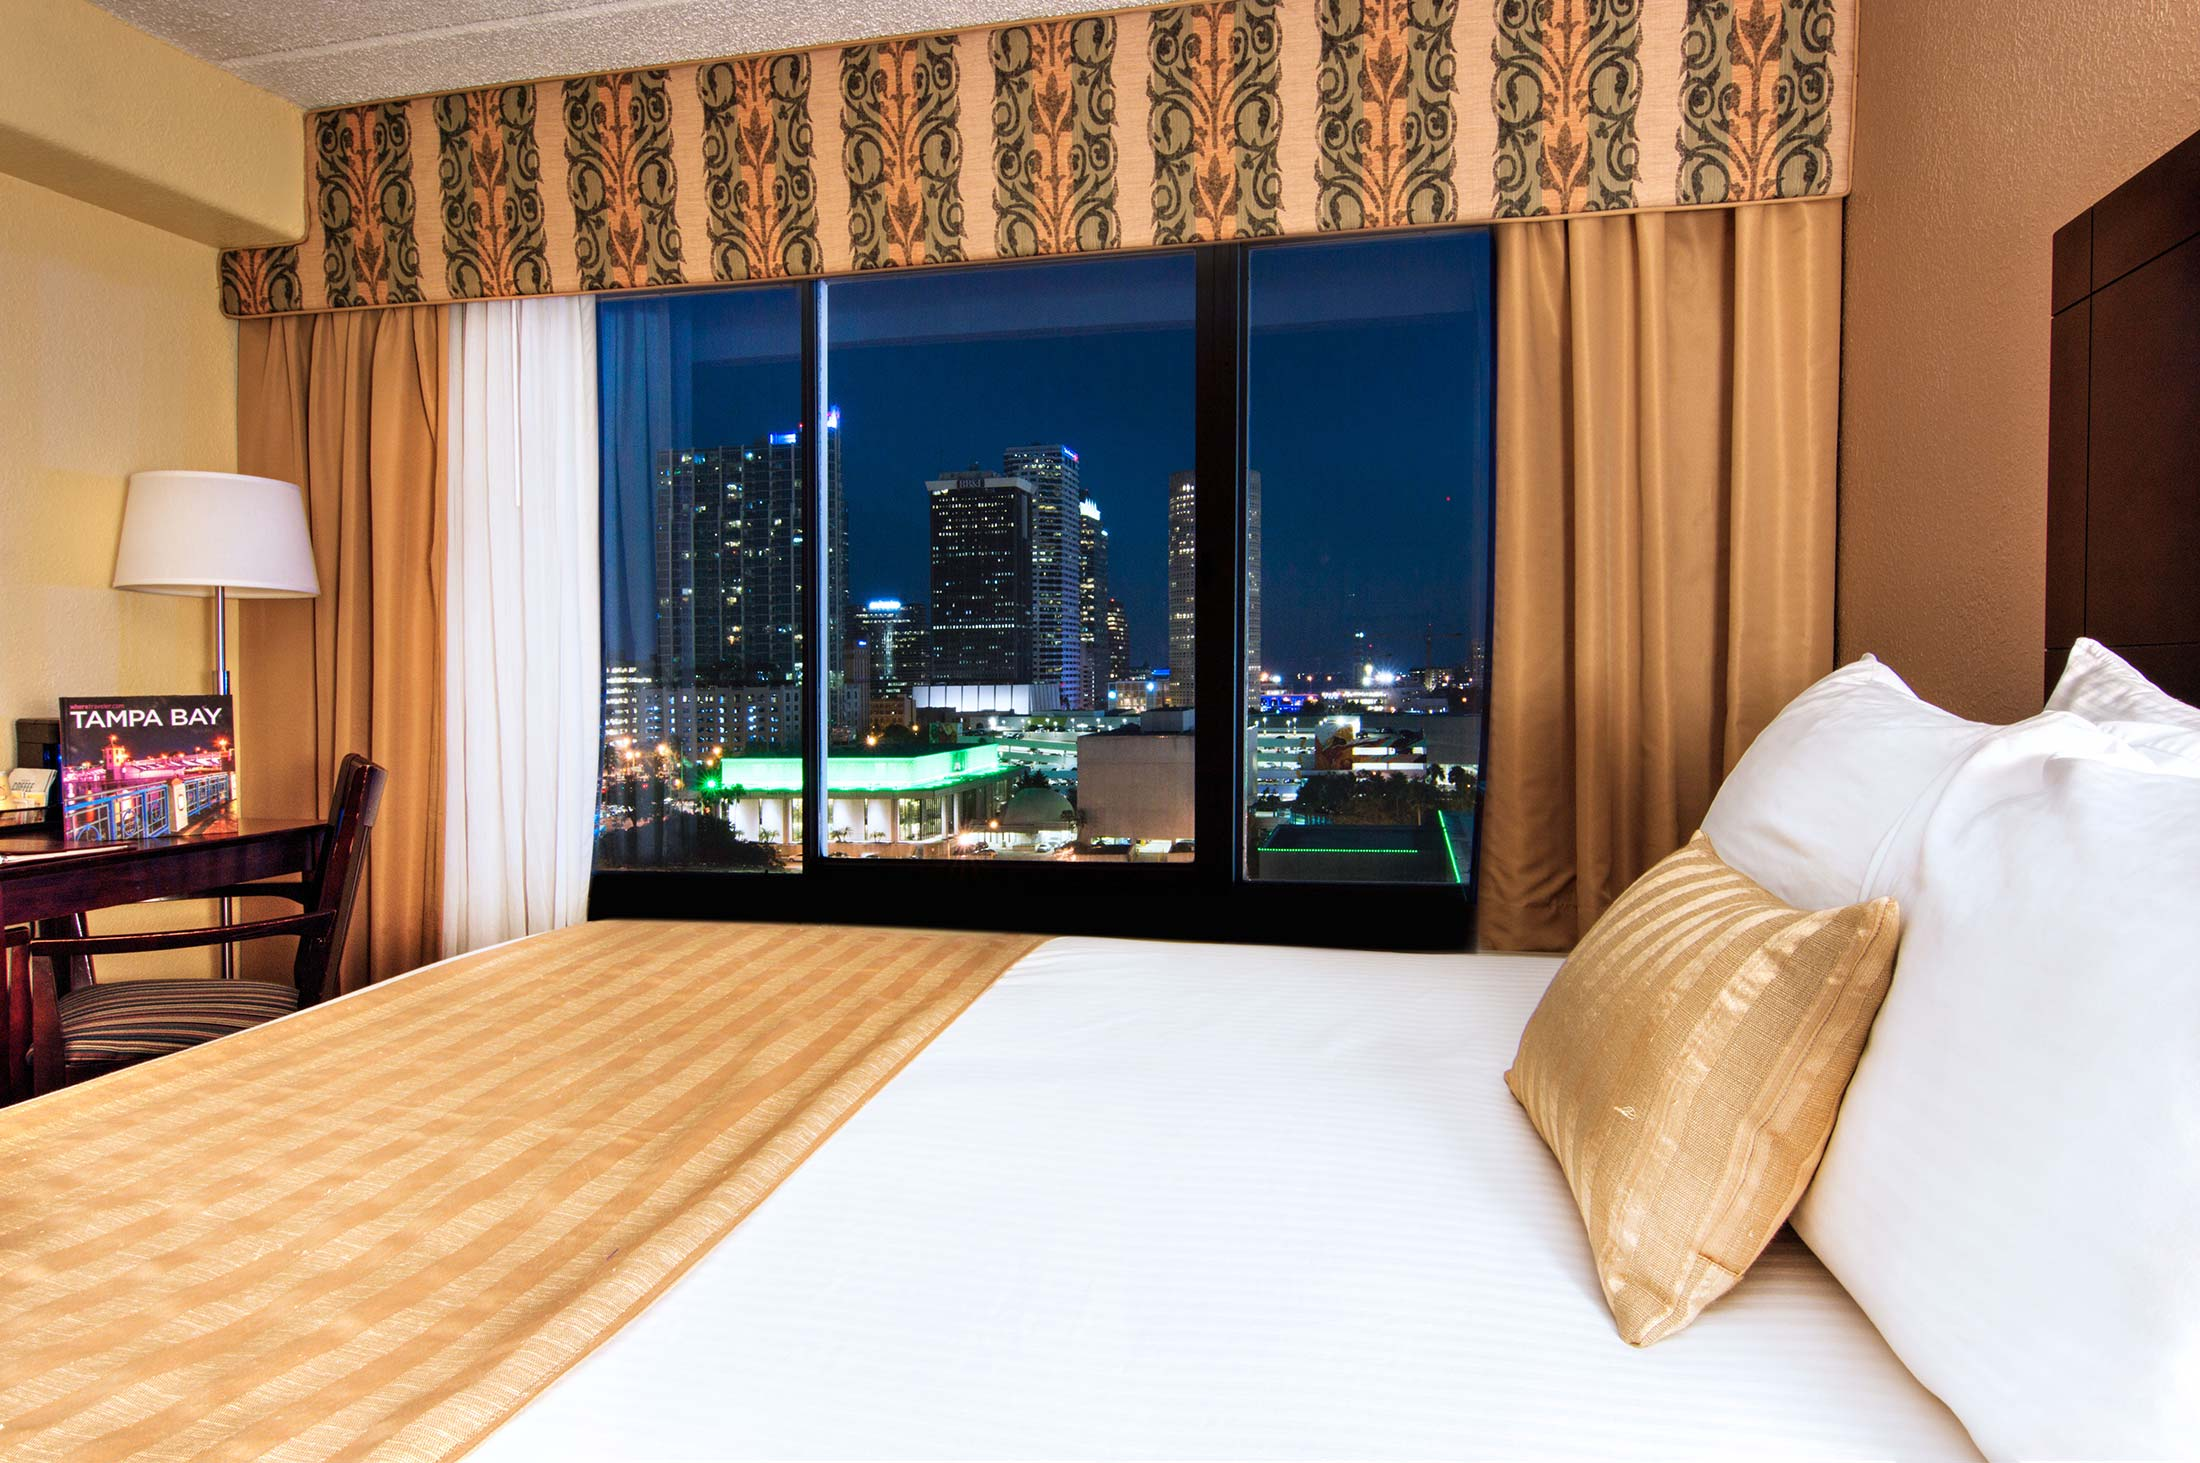 single king guest room with night view of the city